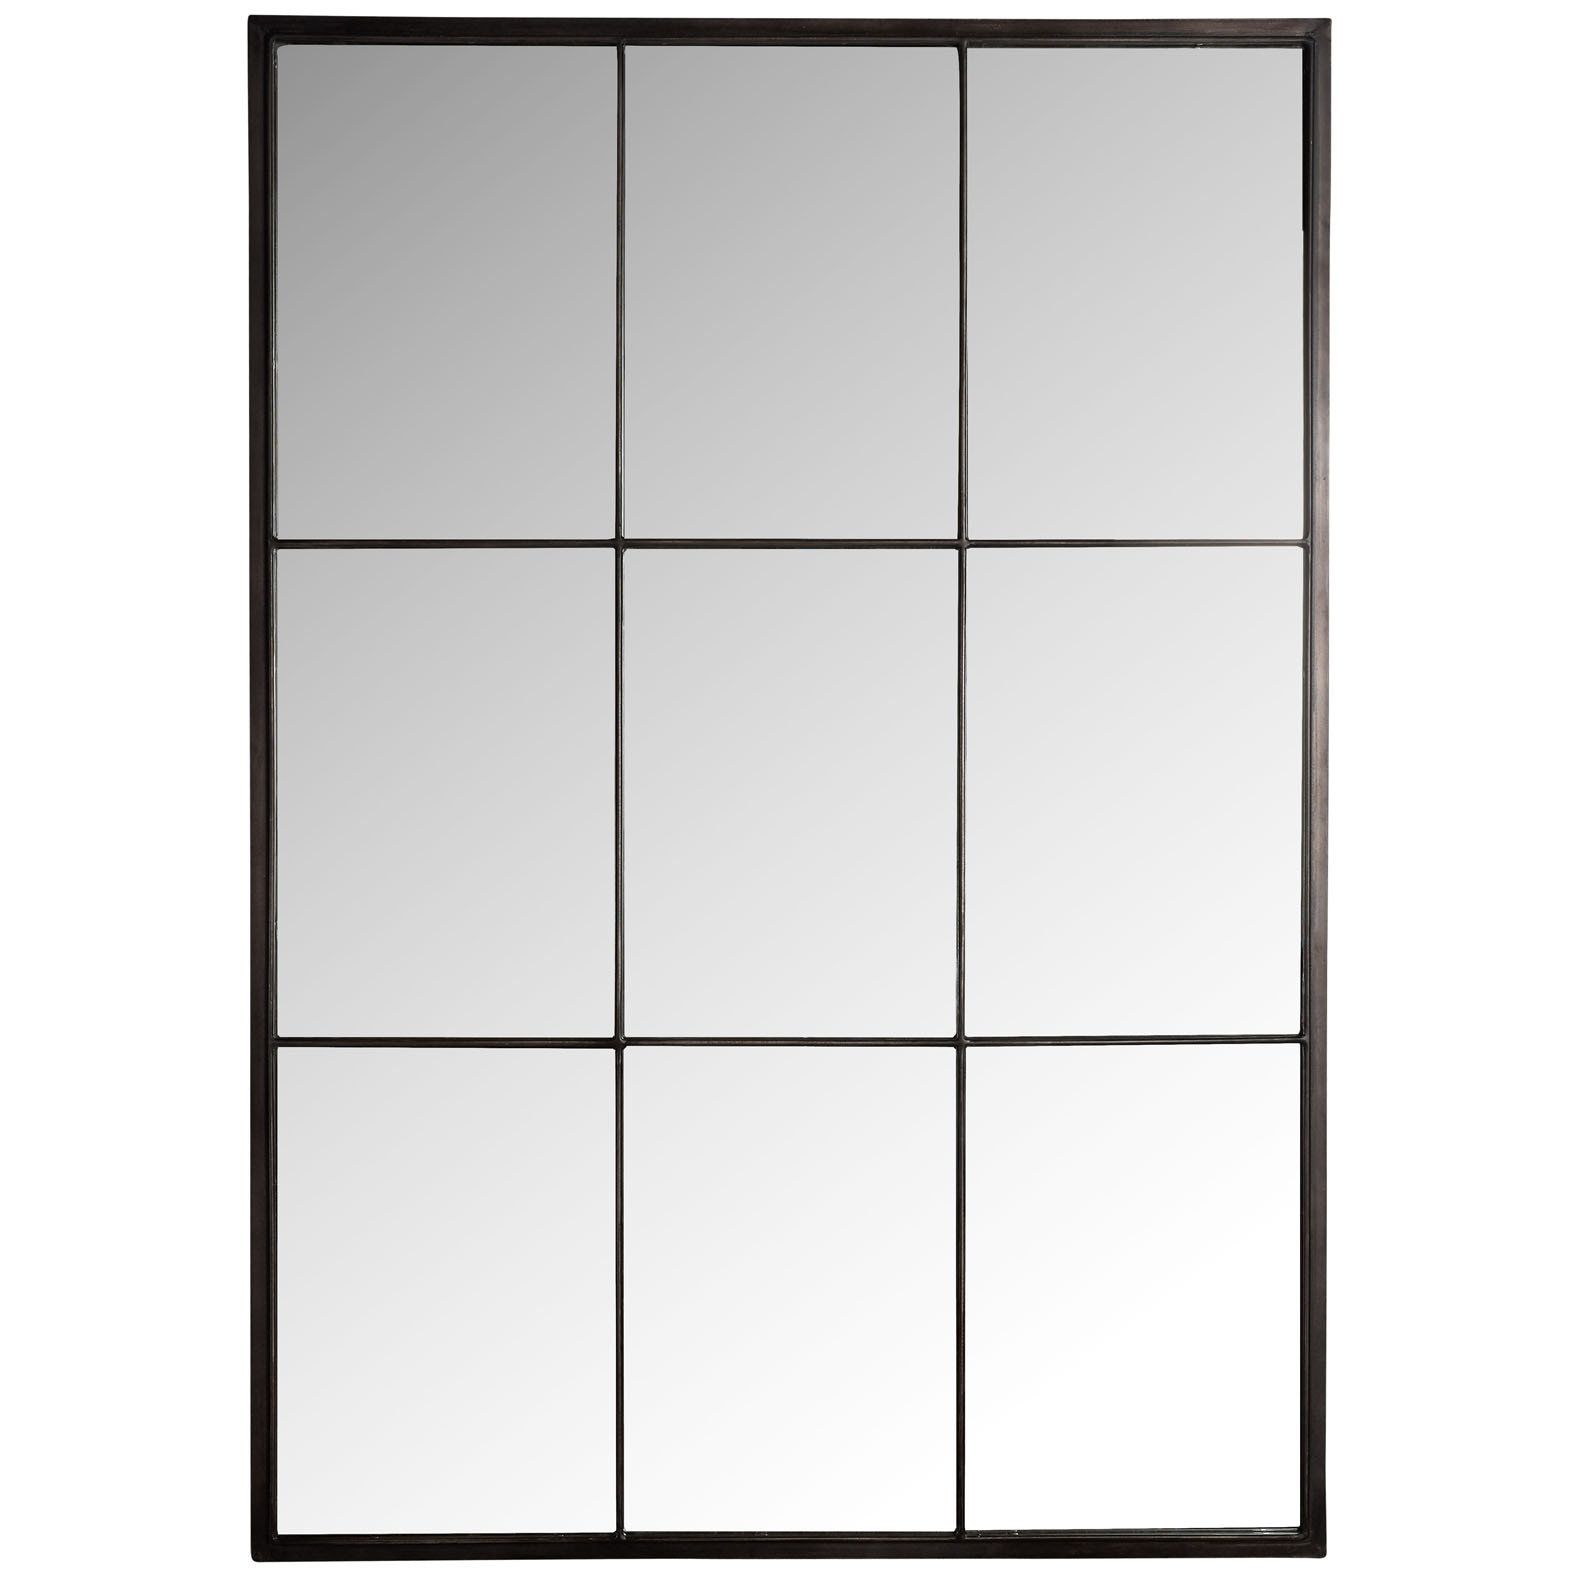 Loft Style Window Mirror Canvas 43sasson